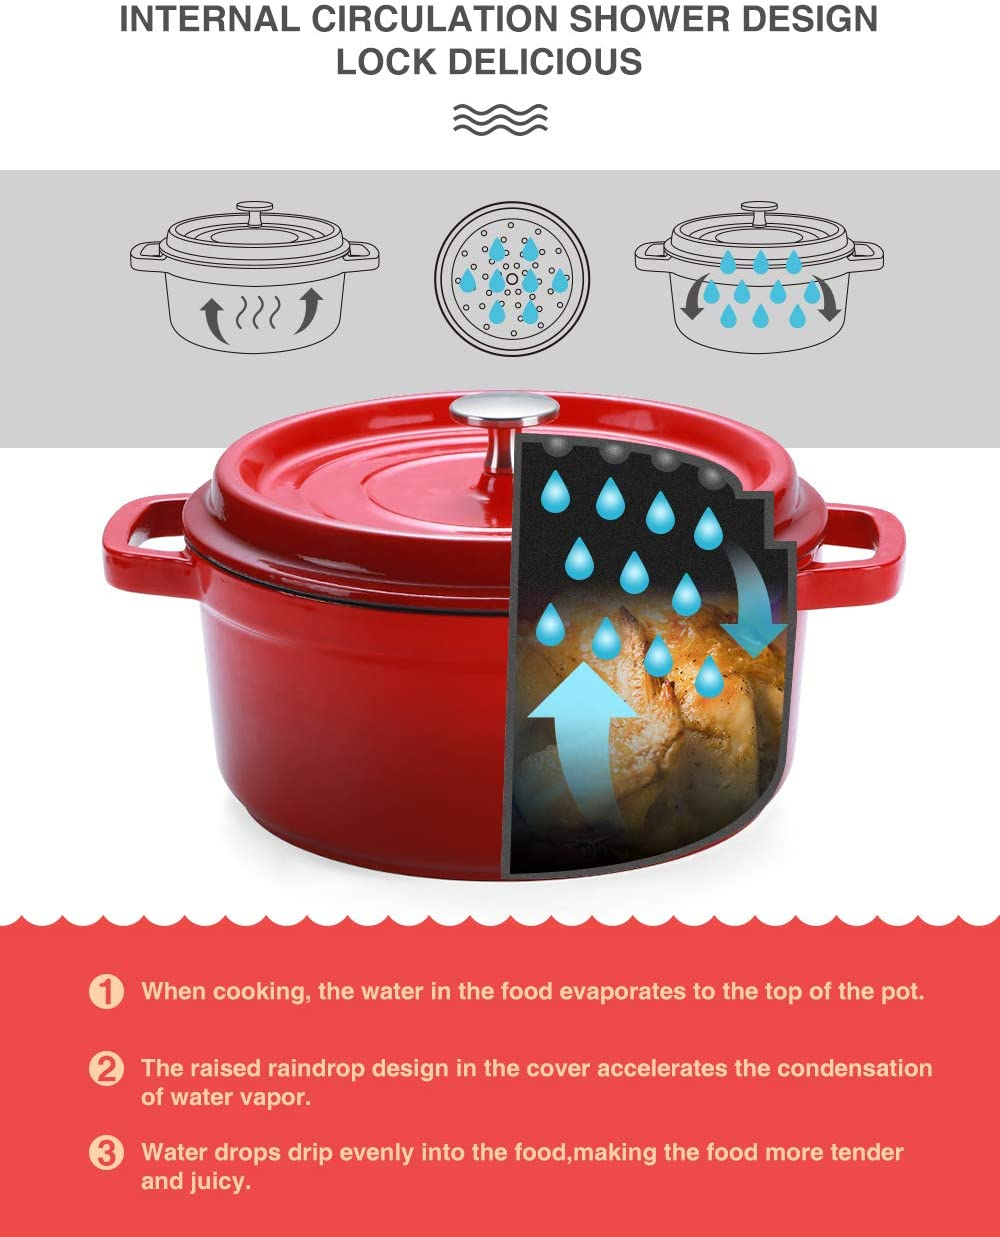 SULIVES Enameled Cast Iron Dutch Oven Bread Baking Pot with Lid,Red,3qt